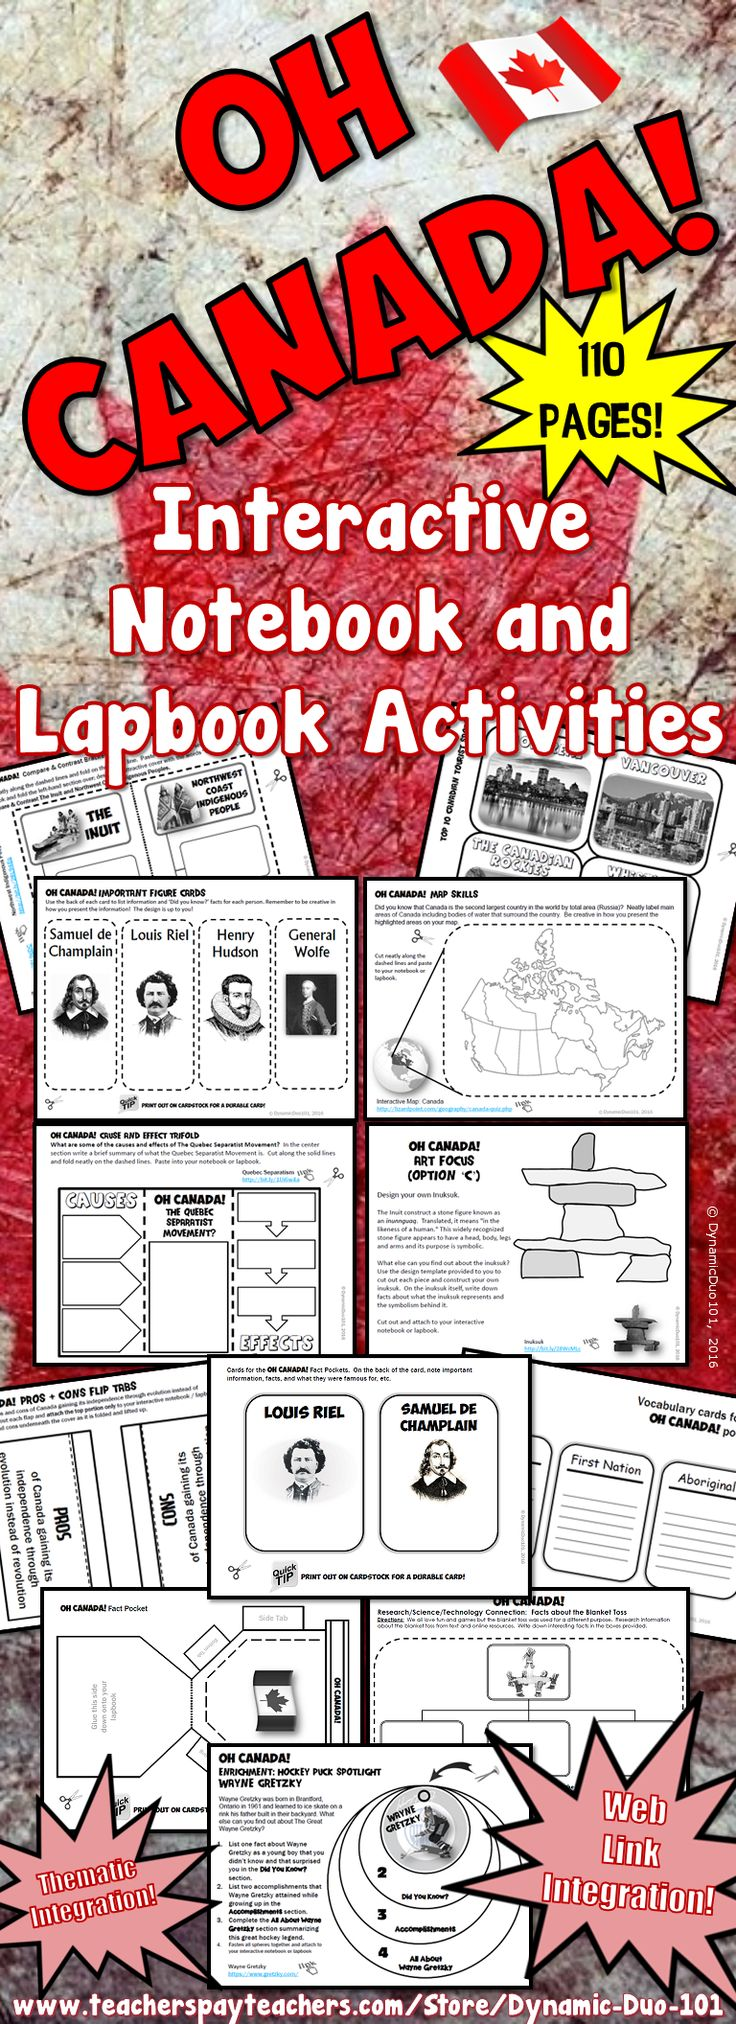 Oh Canada! Canada Interactive Notebook and Lapbook Activities allows students to think on a higher level by virtue of collaborative and imaginative work. Students will create their lapbooks and/or use the templates for an interactive notebook for differentiated, self-directed learning! ★ ☆ ★ This bundle requires absolutely NO PREPARATION! ★ ☆ ★